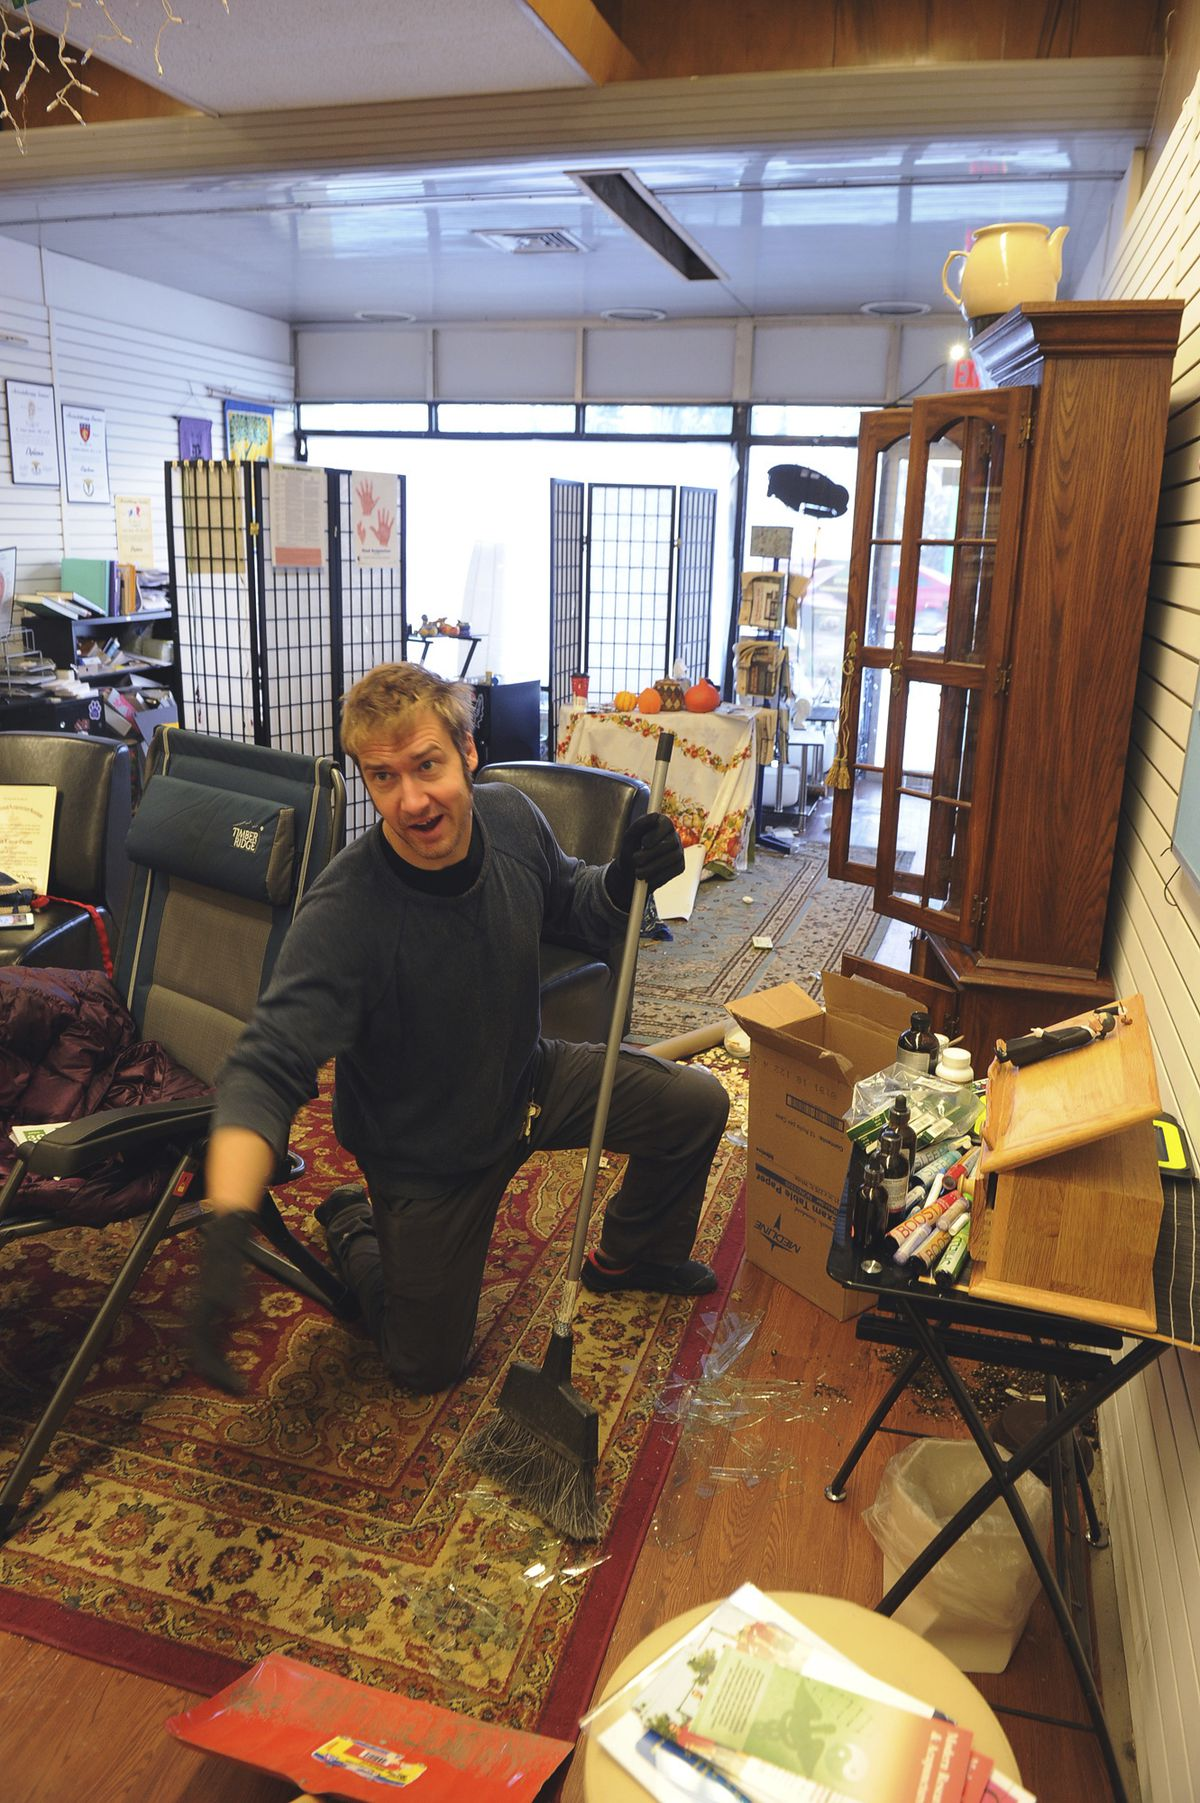 Tristan Cobine helps clean up broken glass in the offices of the Institute Alaska, following an earthquake, Friday, Nov. 30, 2018, in Anchorage, Alaska. (AP Photo/Michael Dinneen)